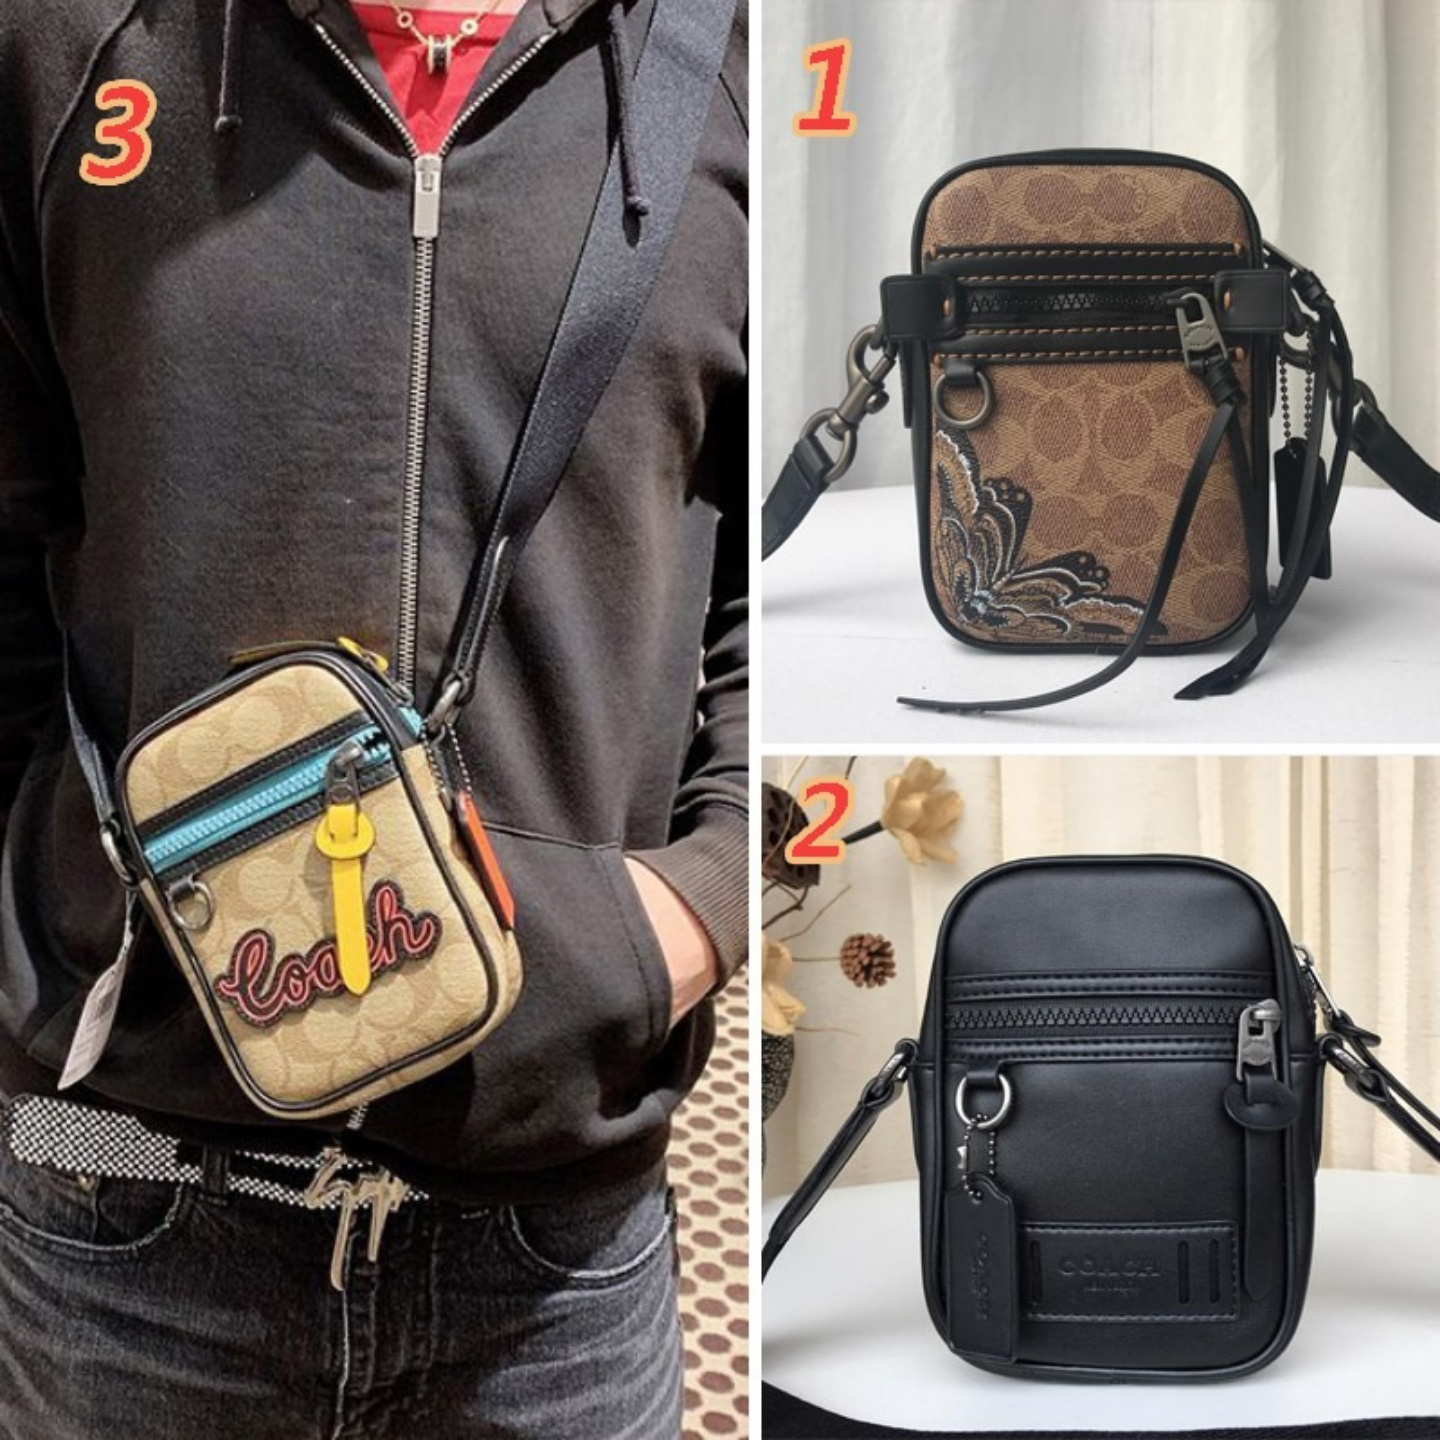 (SG COD)  Men's bag F72930 F36714 F72963 stitching pattern small square coach bag leather messenger bag